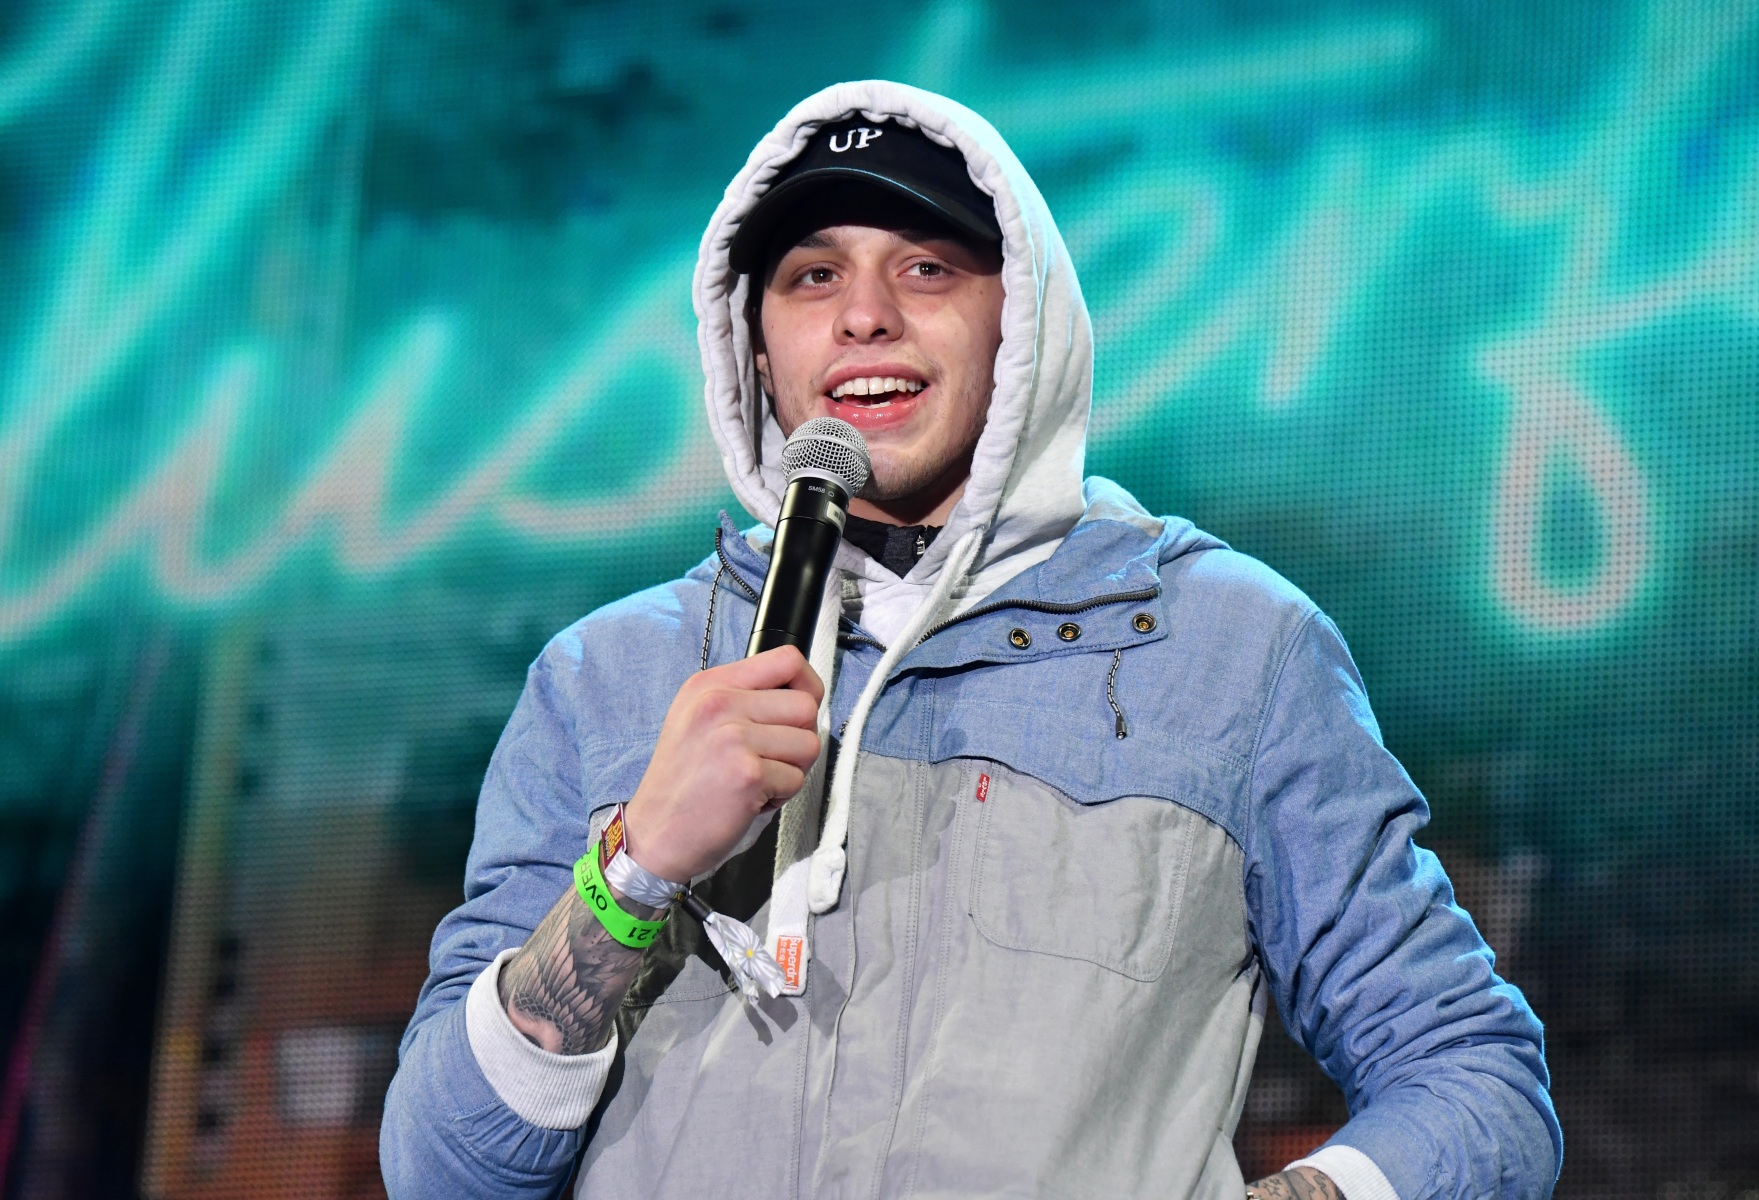 Pete Davidson performs onstage at the Colossal Stage during Colossal Clusterfest at Civic Center Plaza and The Bill Graham Civic Auditorium on June 3, 2017 in San Francisco, California.  (Photo by Jeff Kravitz/FilmMagic)